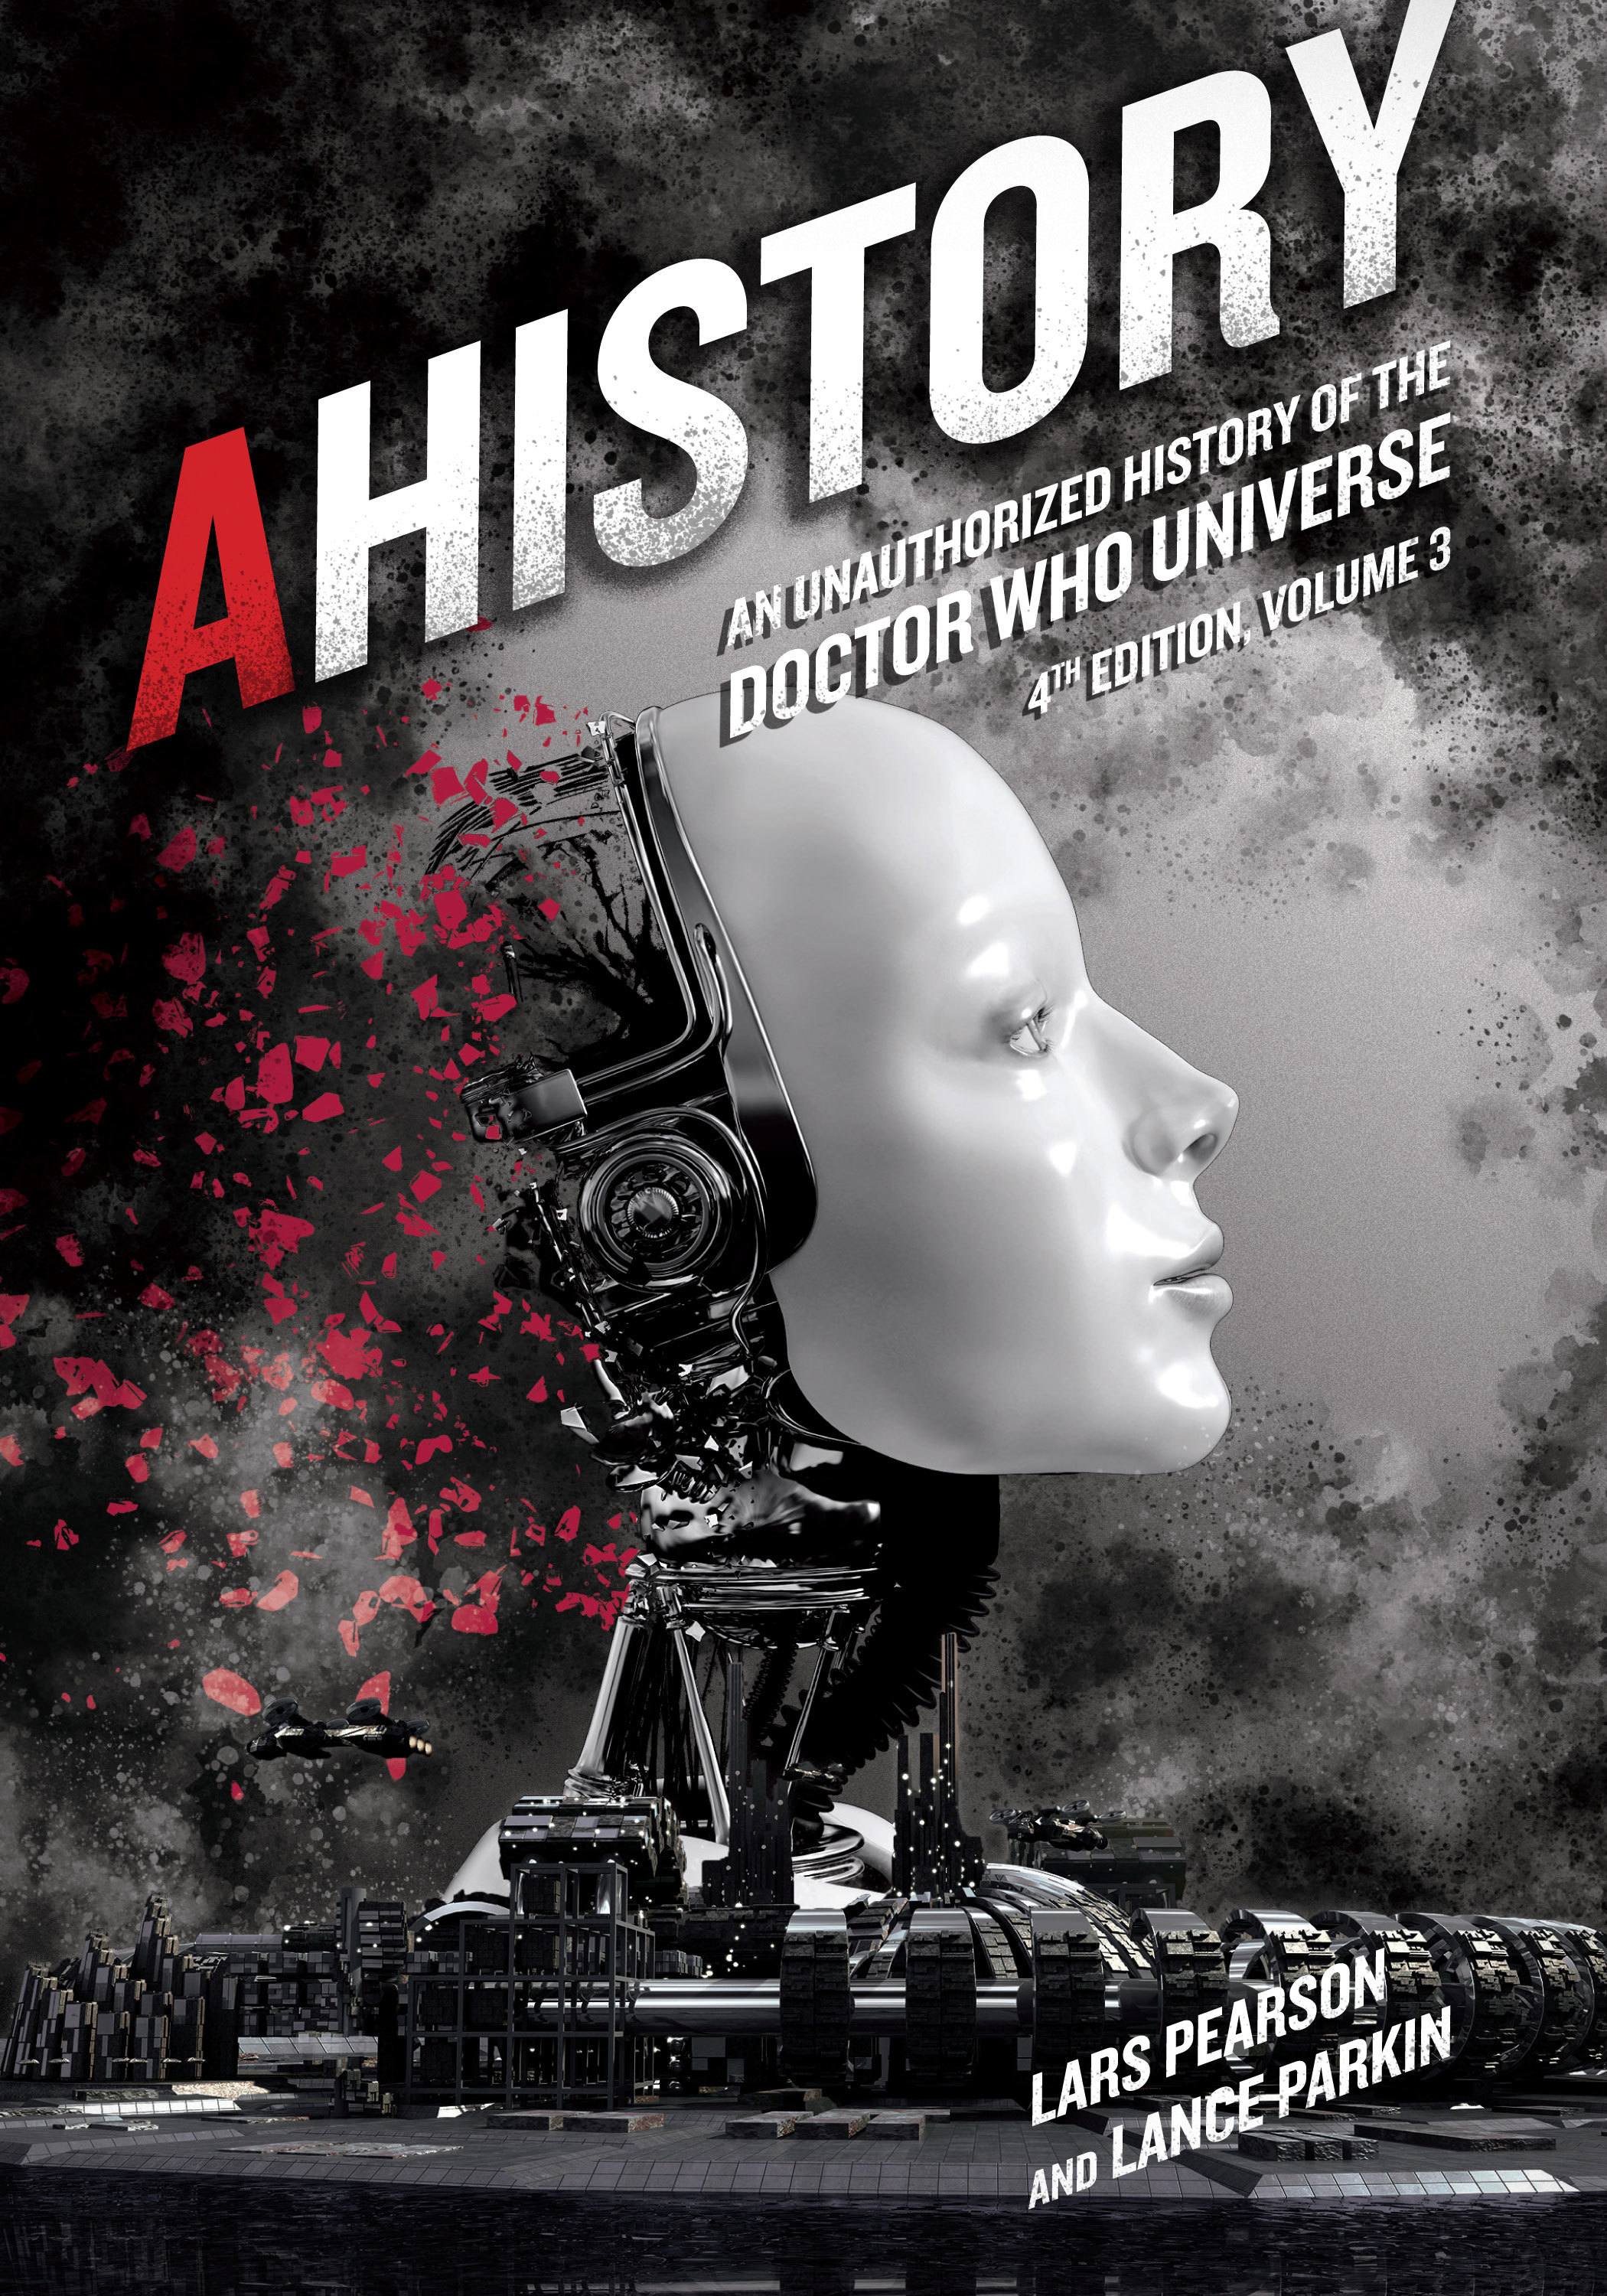 AHistory: An Unauthorized History of the Doctor Who Universe (Fourth Edition Vol. 3)